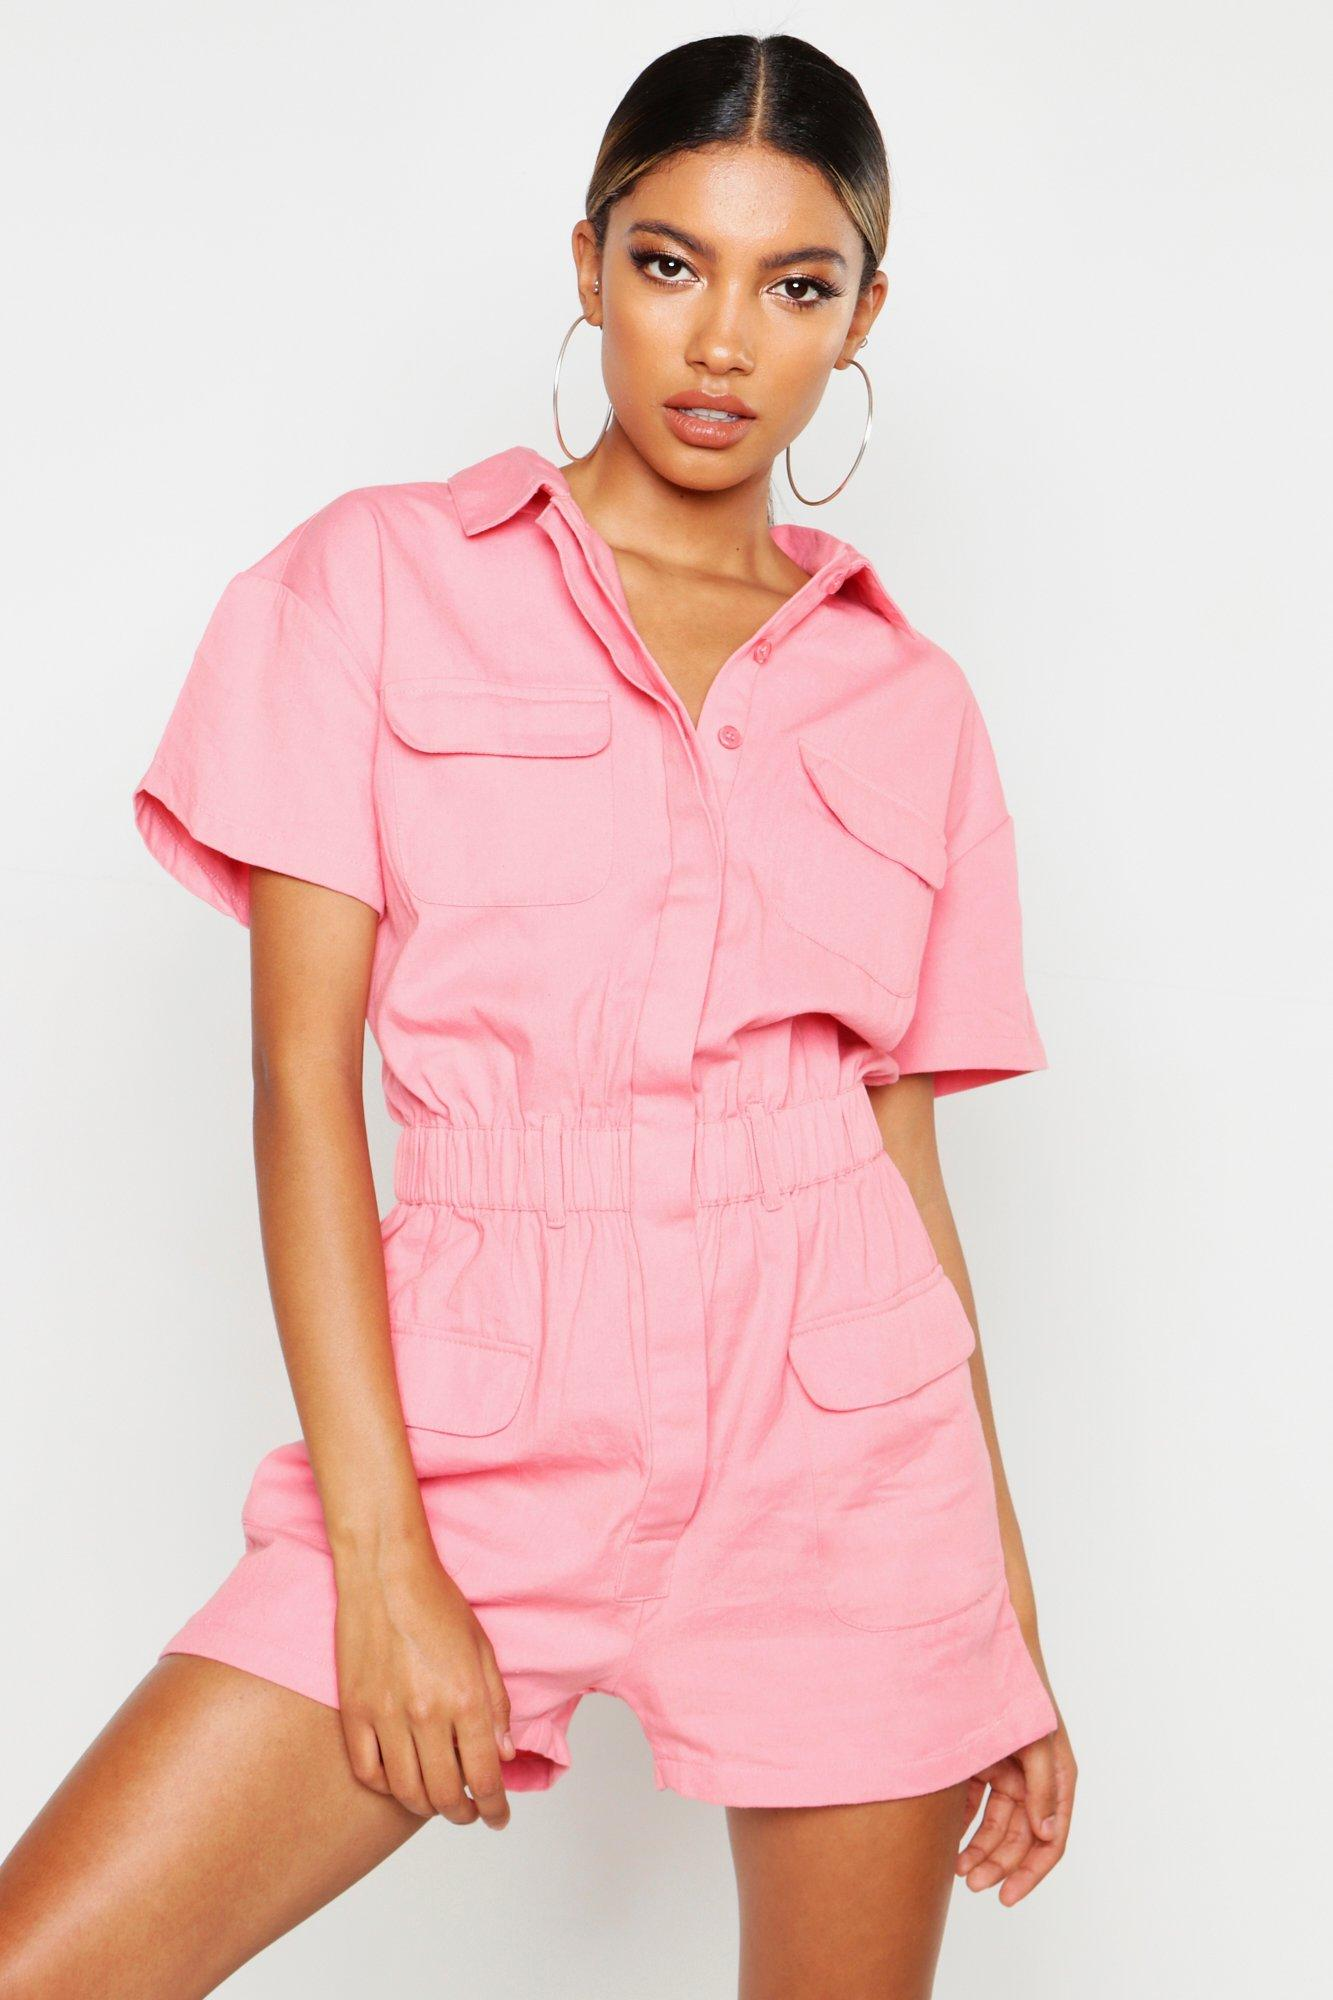 60s Mod Clothing Outfit Ideas Womens Utility Denim Romper - Pink - 12 $27.50 AT vintagedancer.com